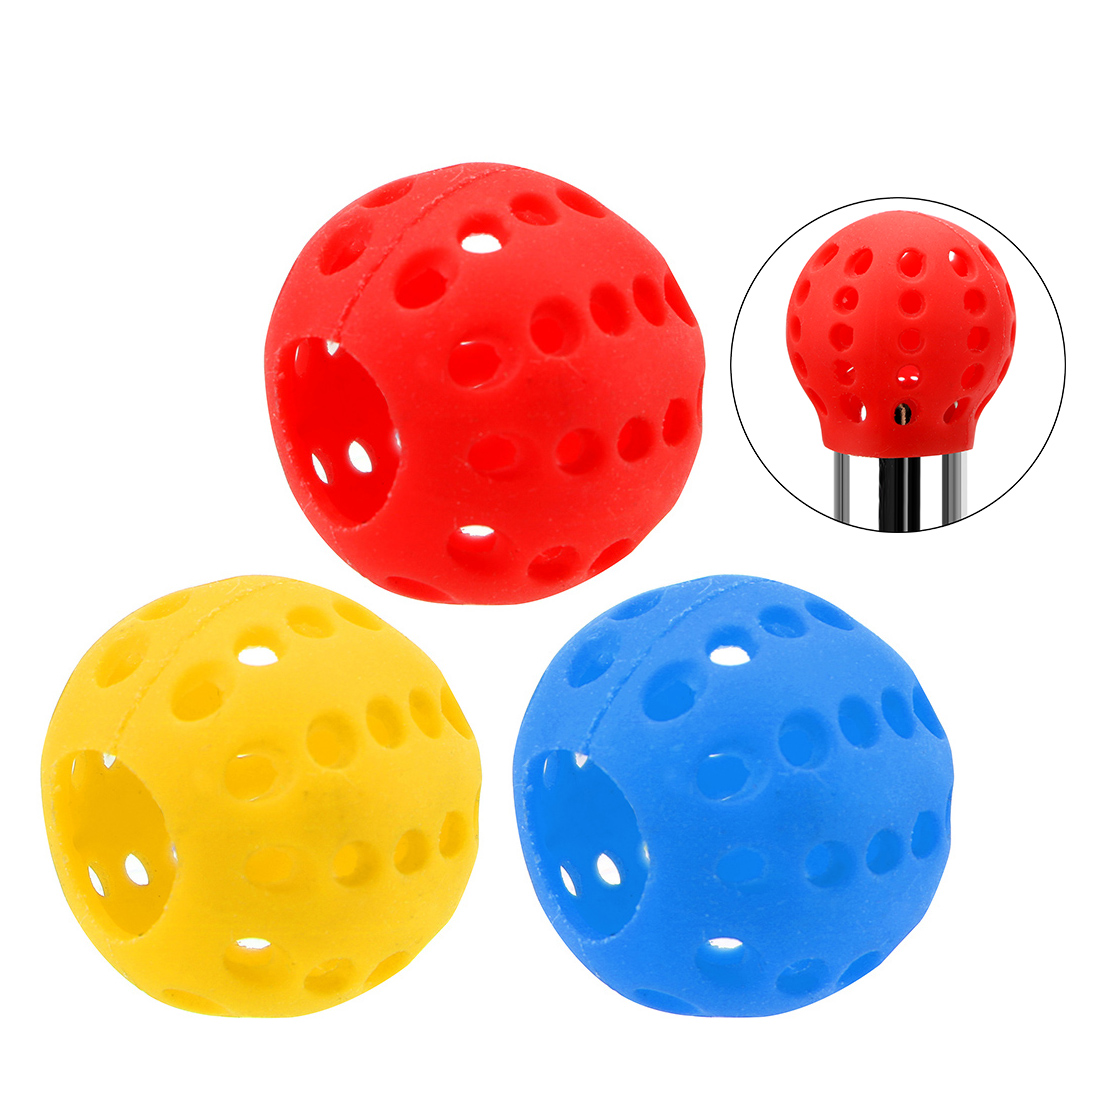 New Portable SiliconeHookah Silicone Smoking set Ball Shaped Hookah Pipe